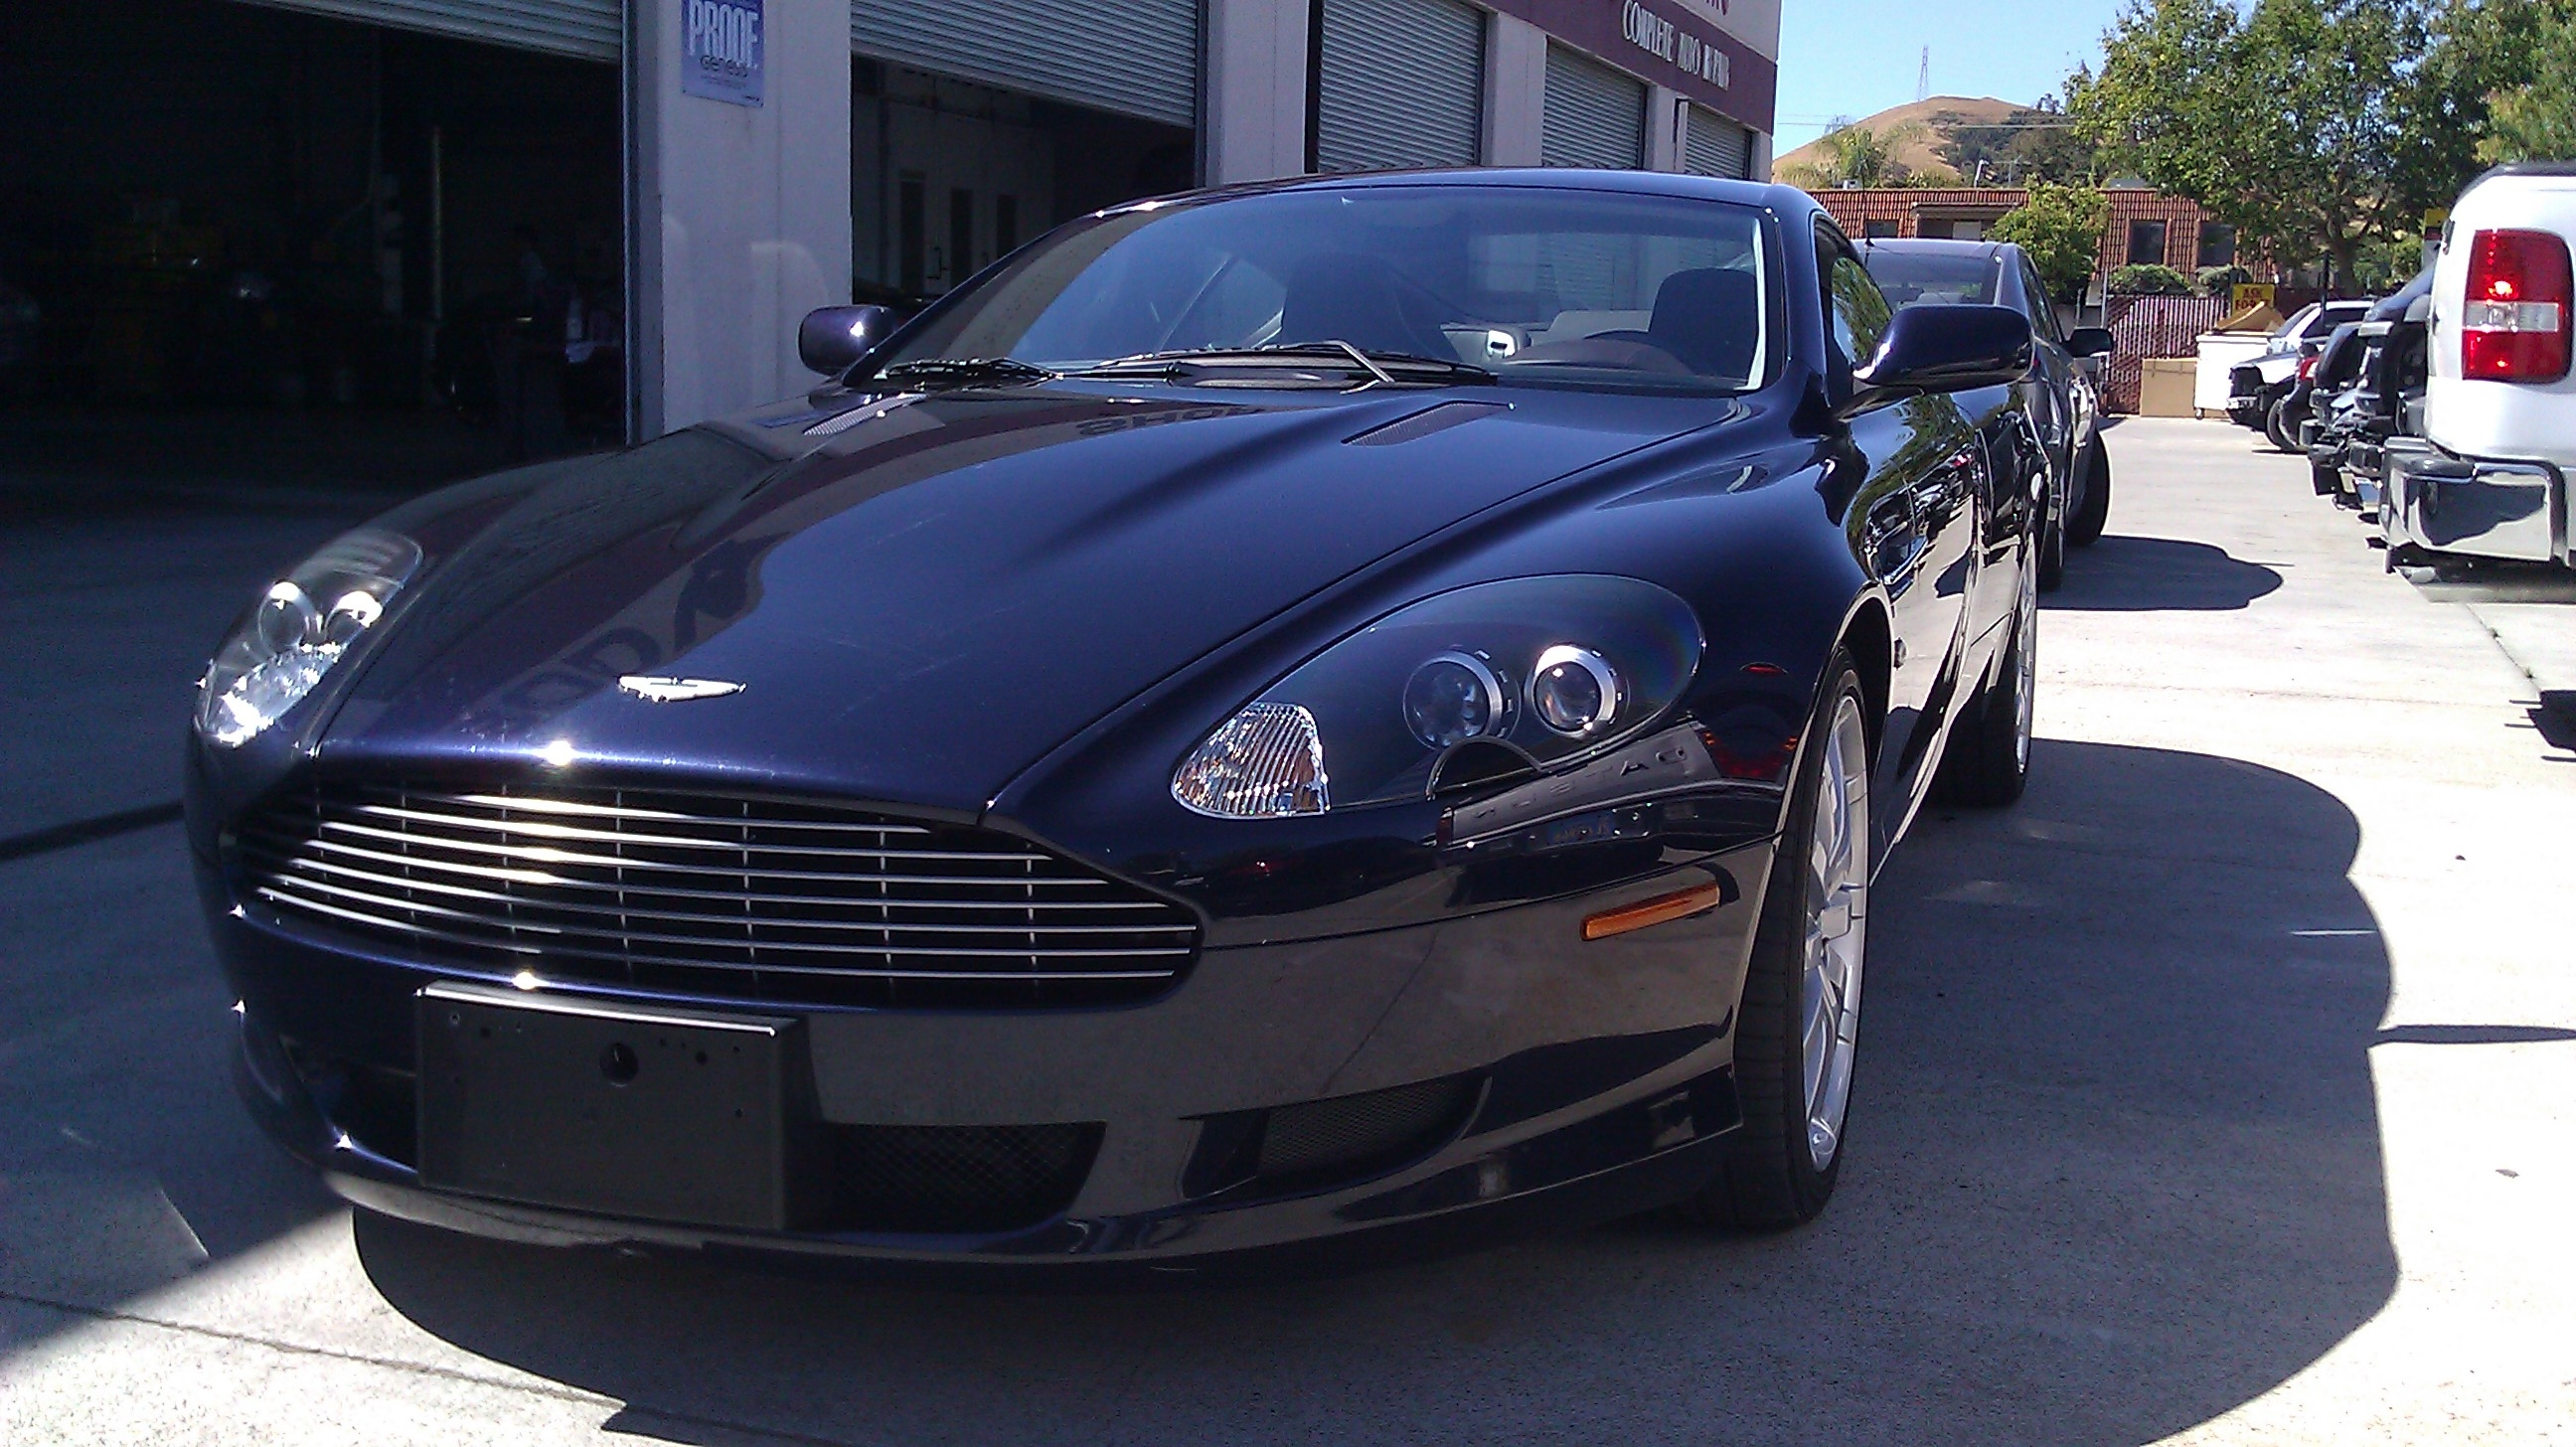 Aston Martin DB9 - Morgan Hill Auto Body